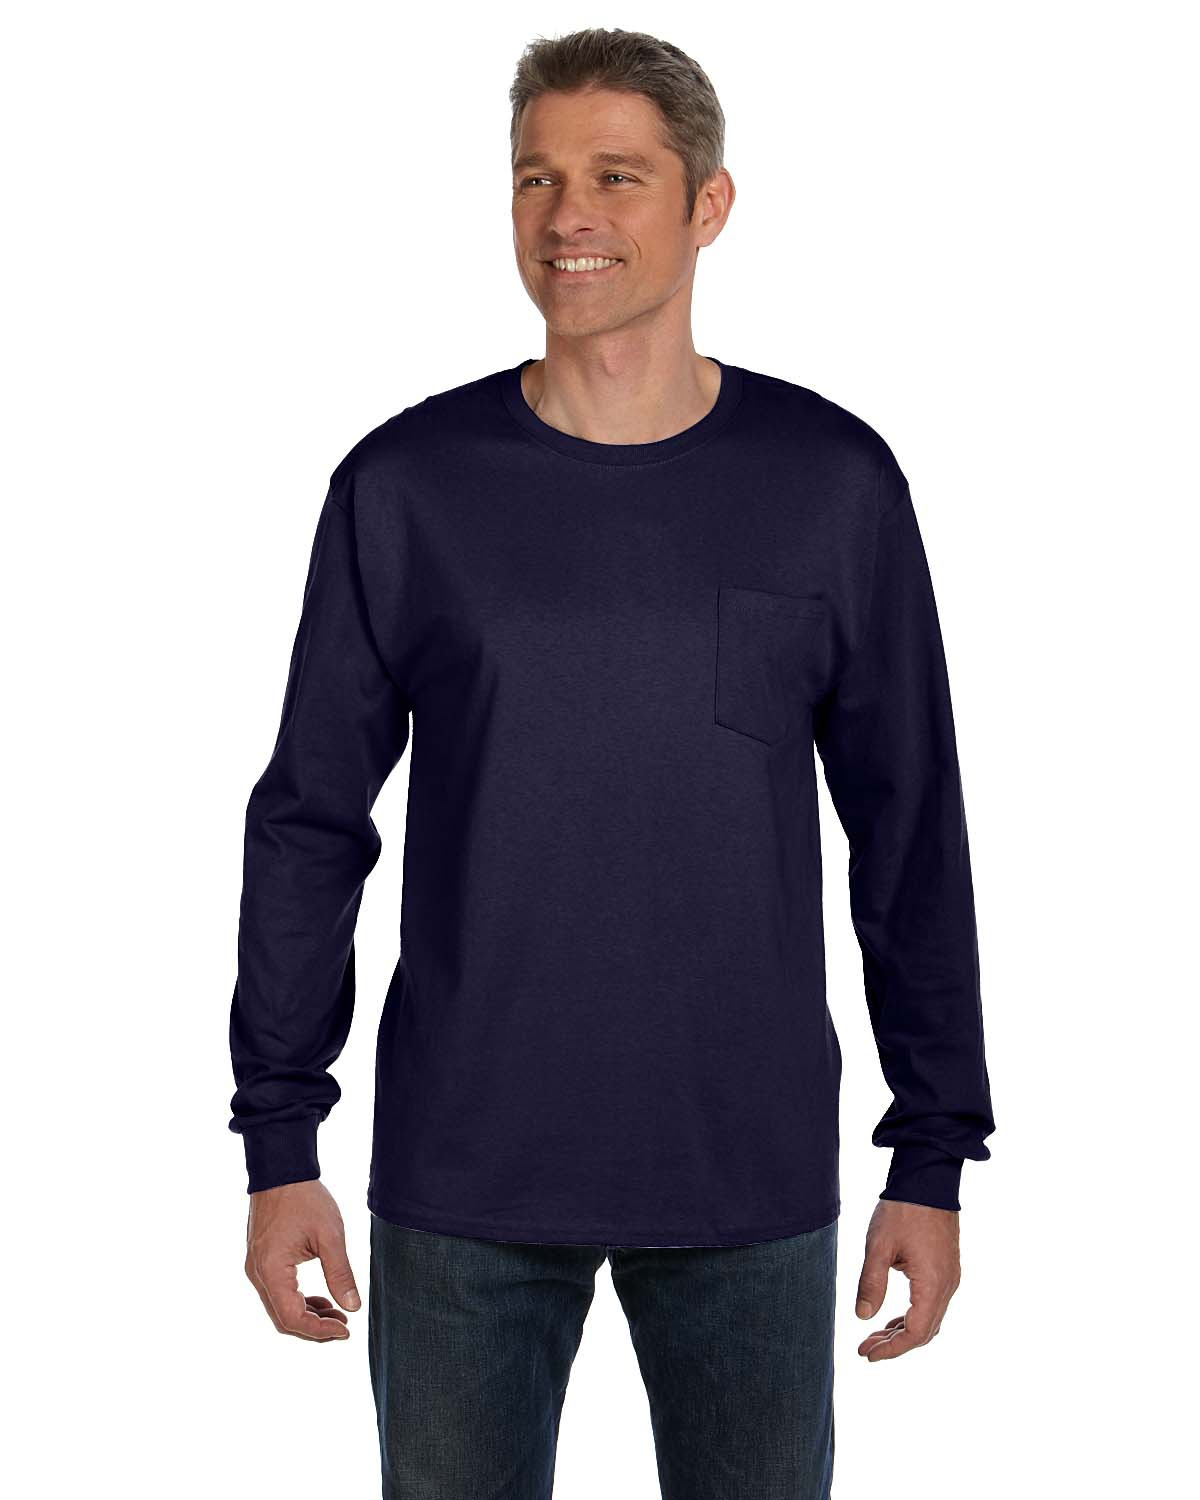 Hanes 5596  Tagless 6.1 oz. Long Sleeve T-Shirt w/ a Pocket